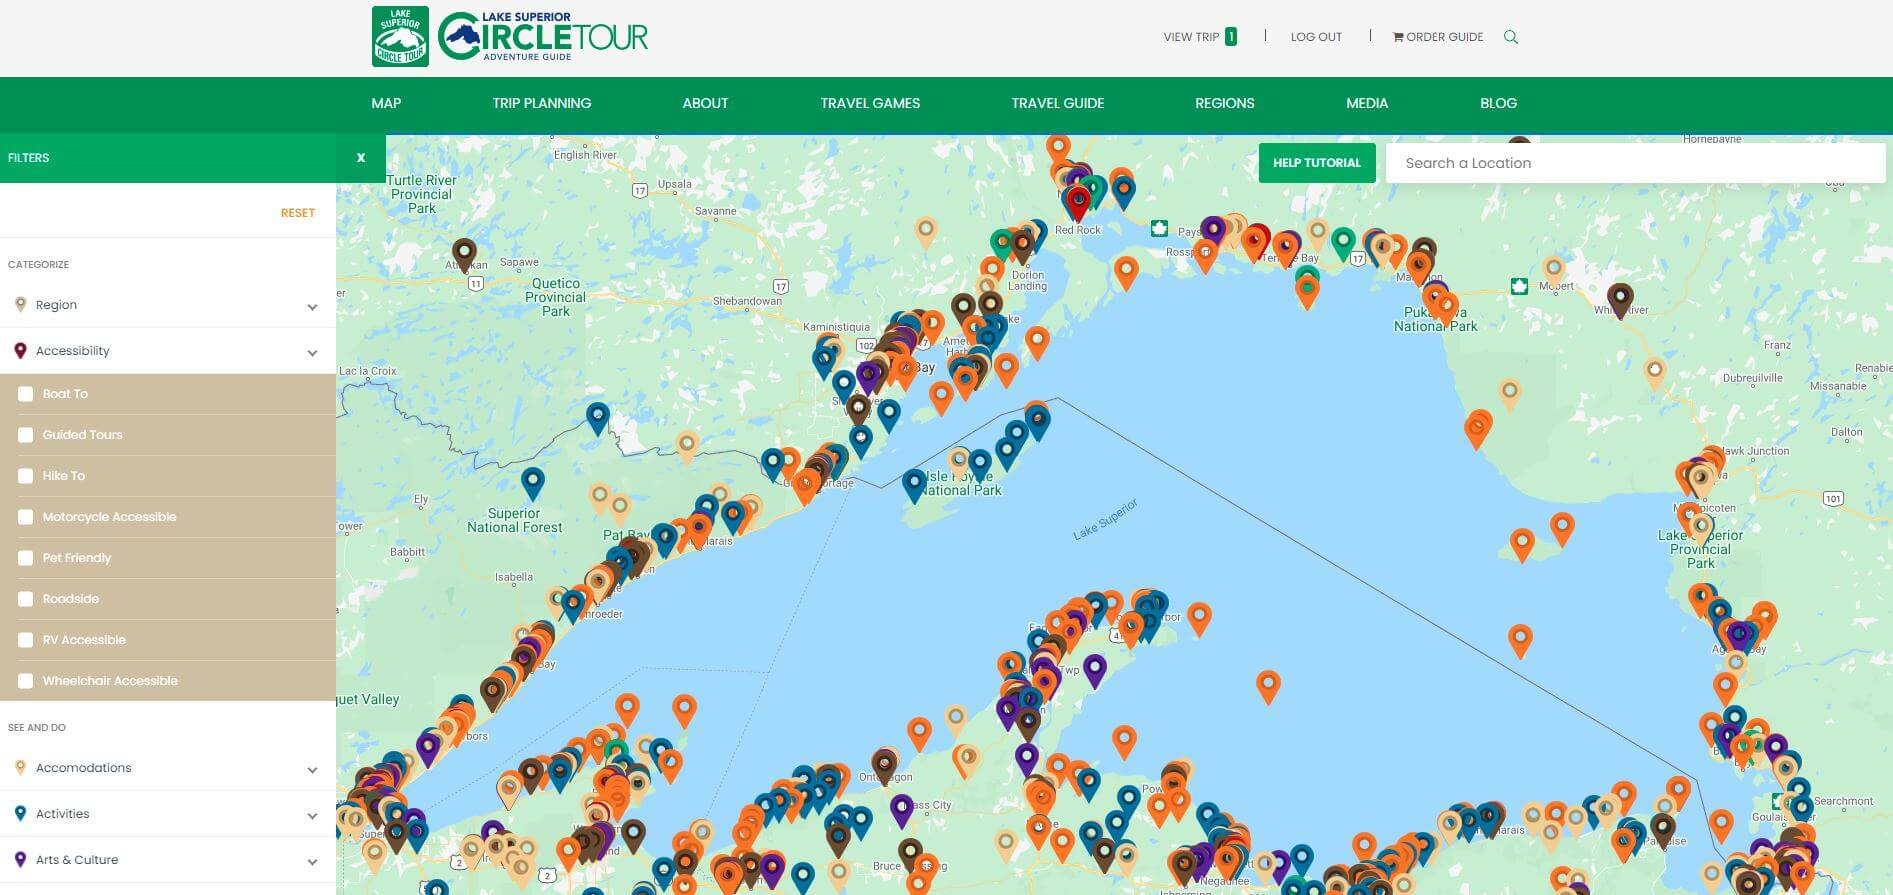 Lake Superior Circle Tour Trip Planner - Using Filters